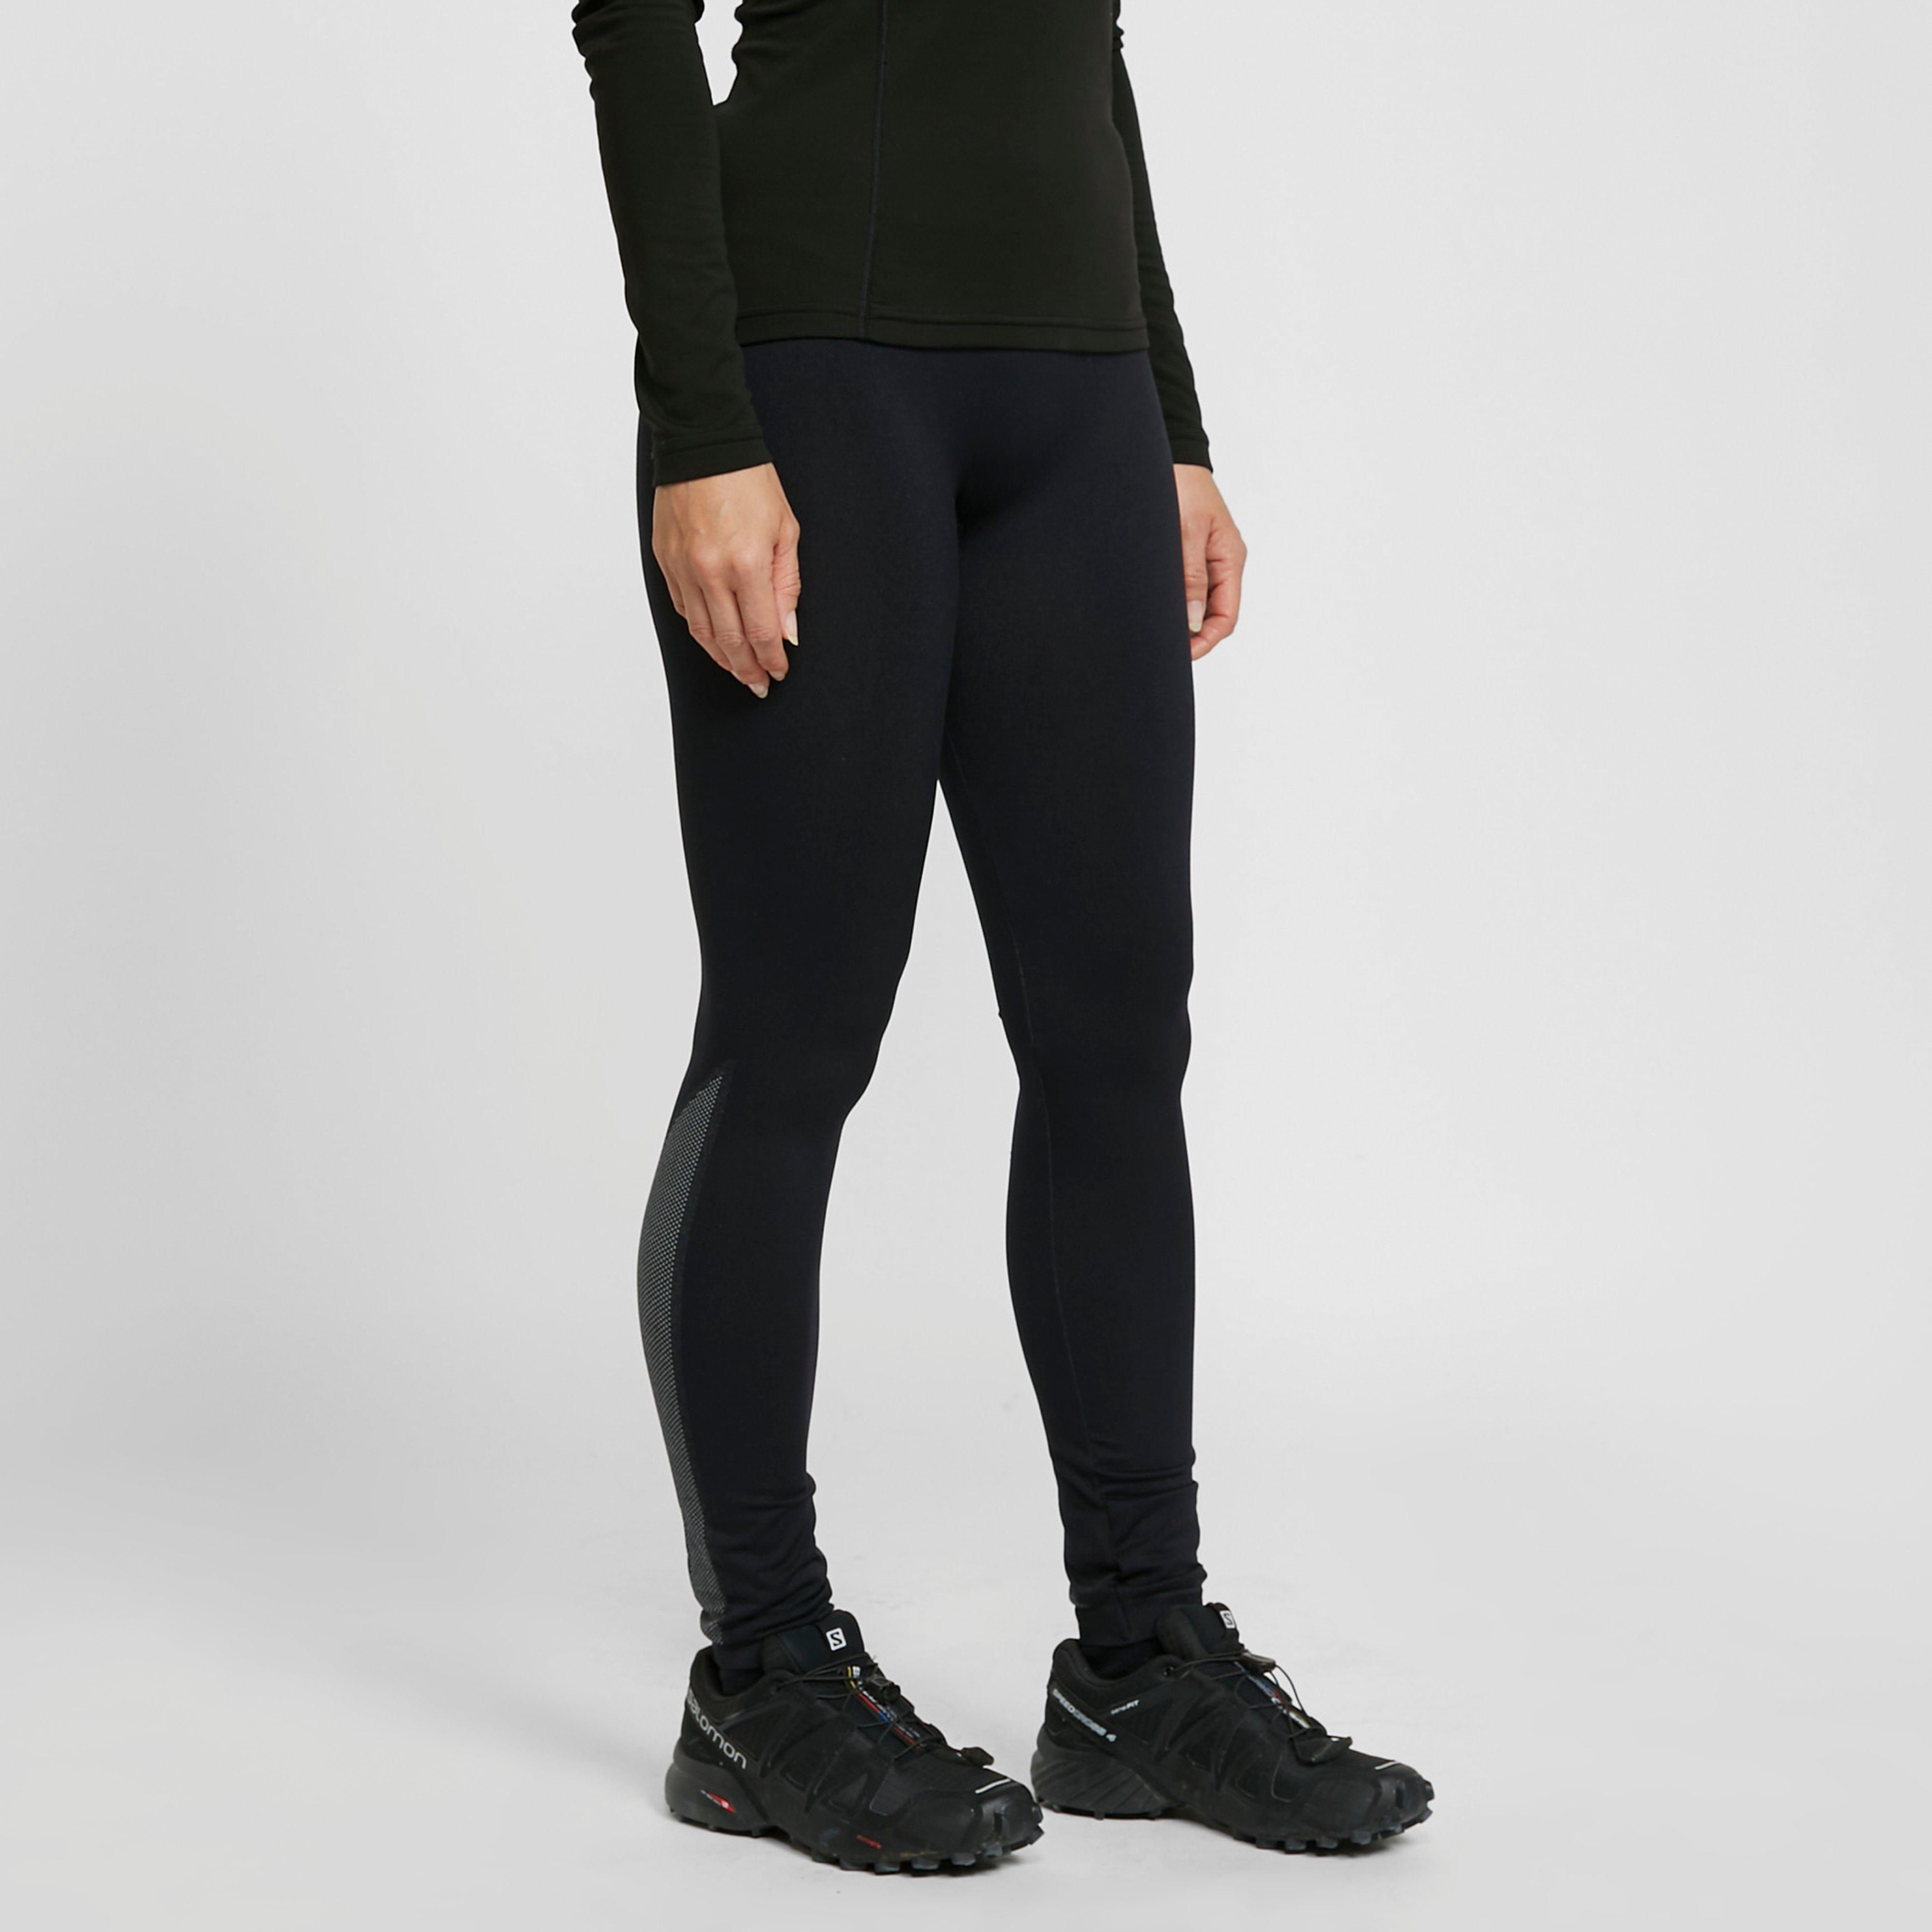 Image of The Edge Women's Flow Form Baselayer Tights - Black/Wome, Black/WOME